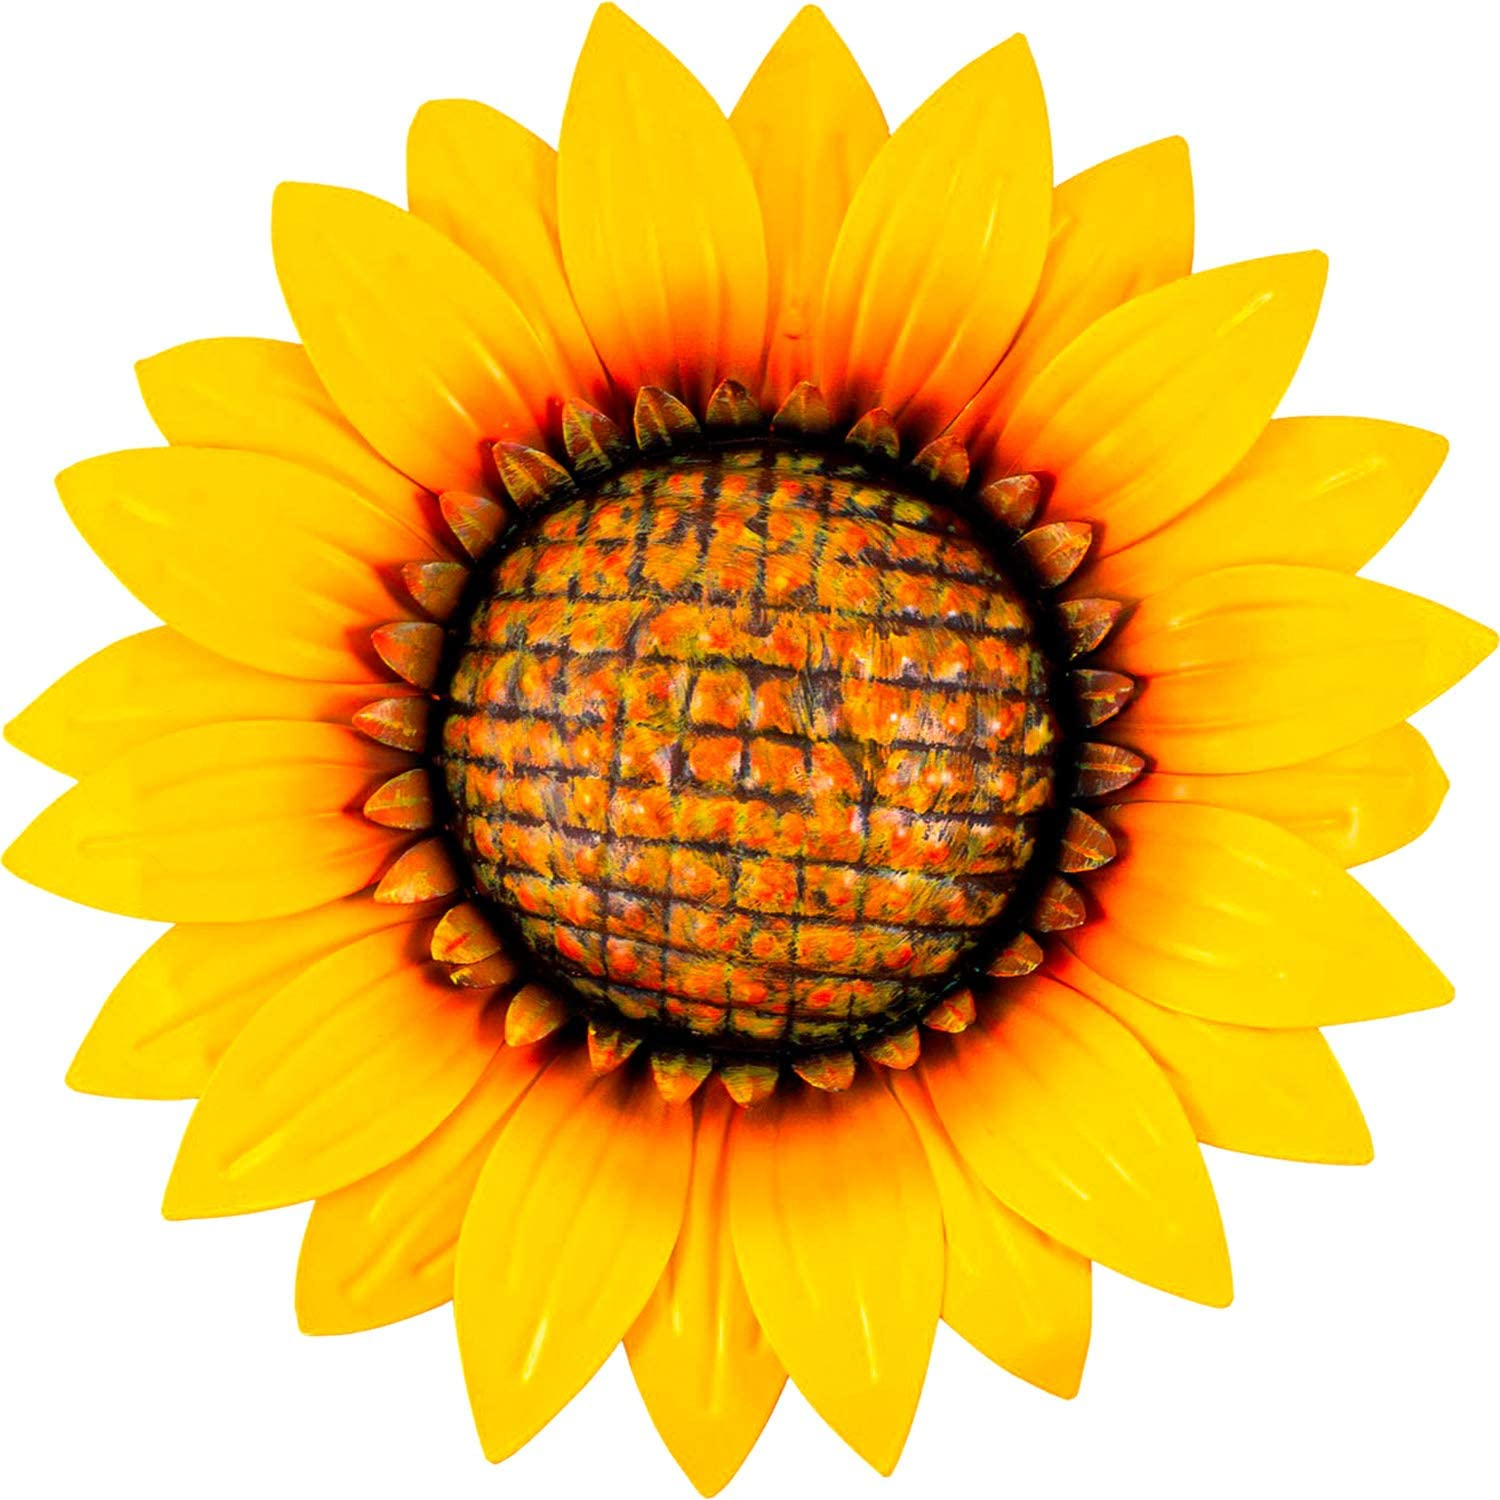 Shefio Sunflower Metal Flower Decor | Yellow Decorative Wall Art for Home/Garden/Office | Metal Indoor Living Room Wall Decor | Three-Dimensional Fall Outdoor Decorations